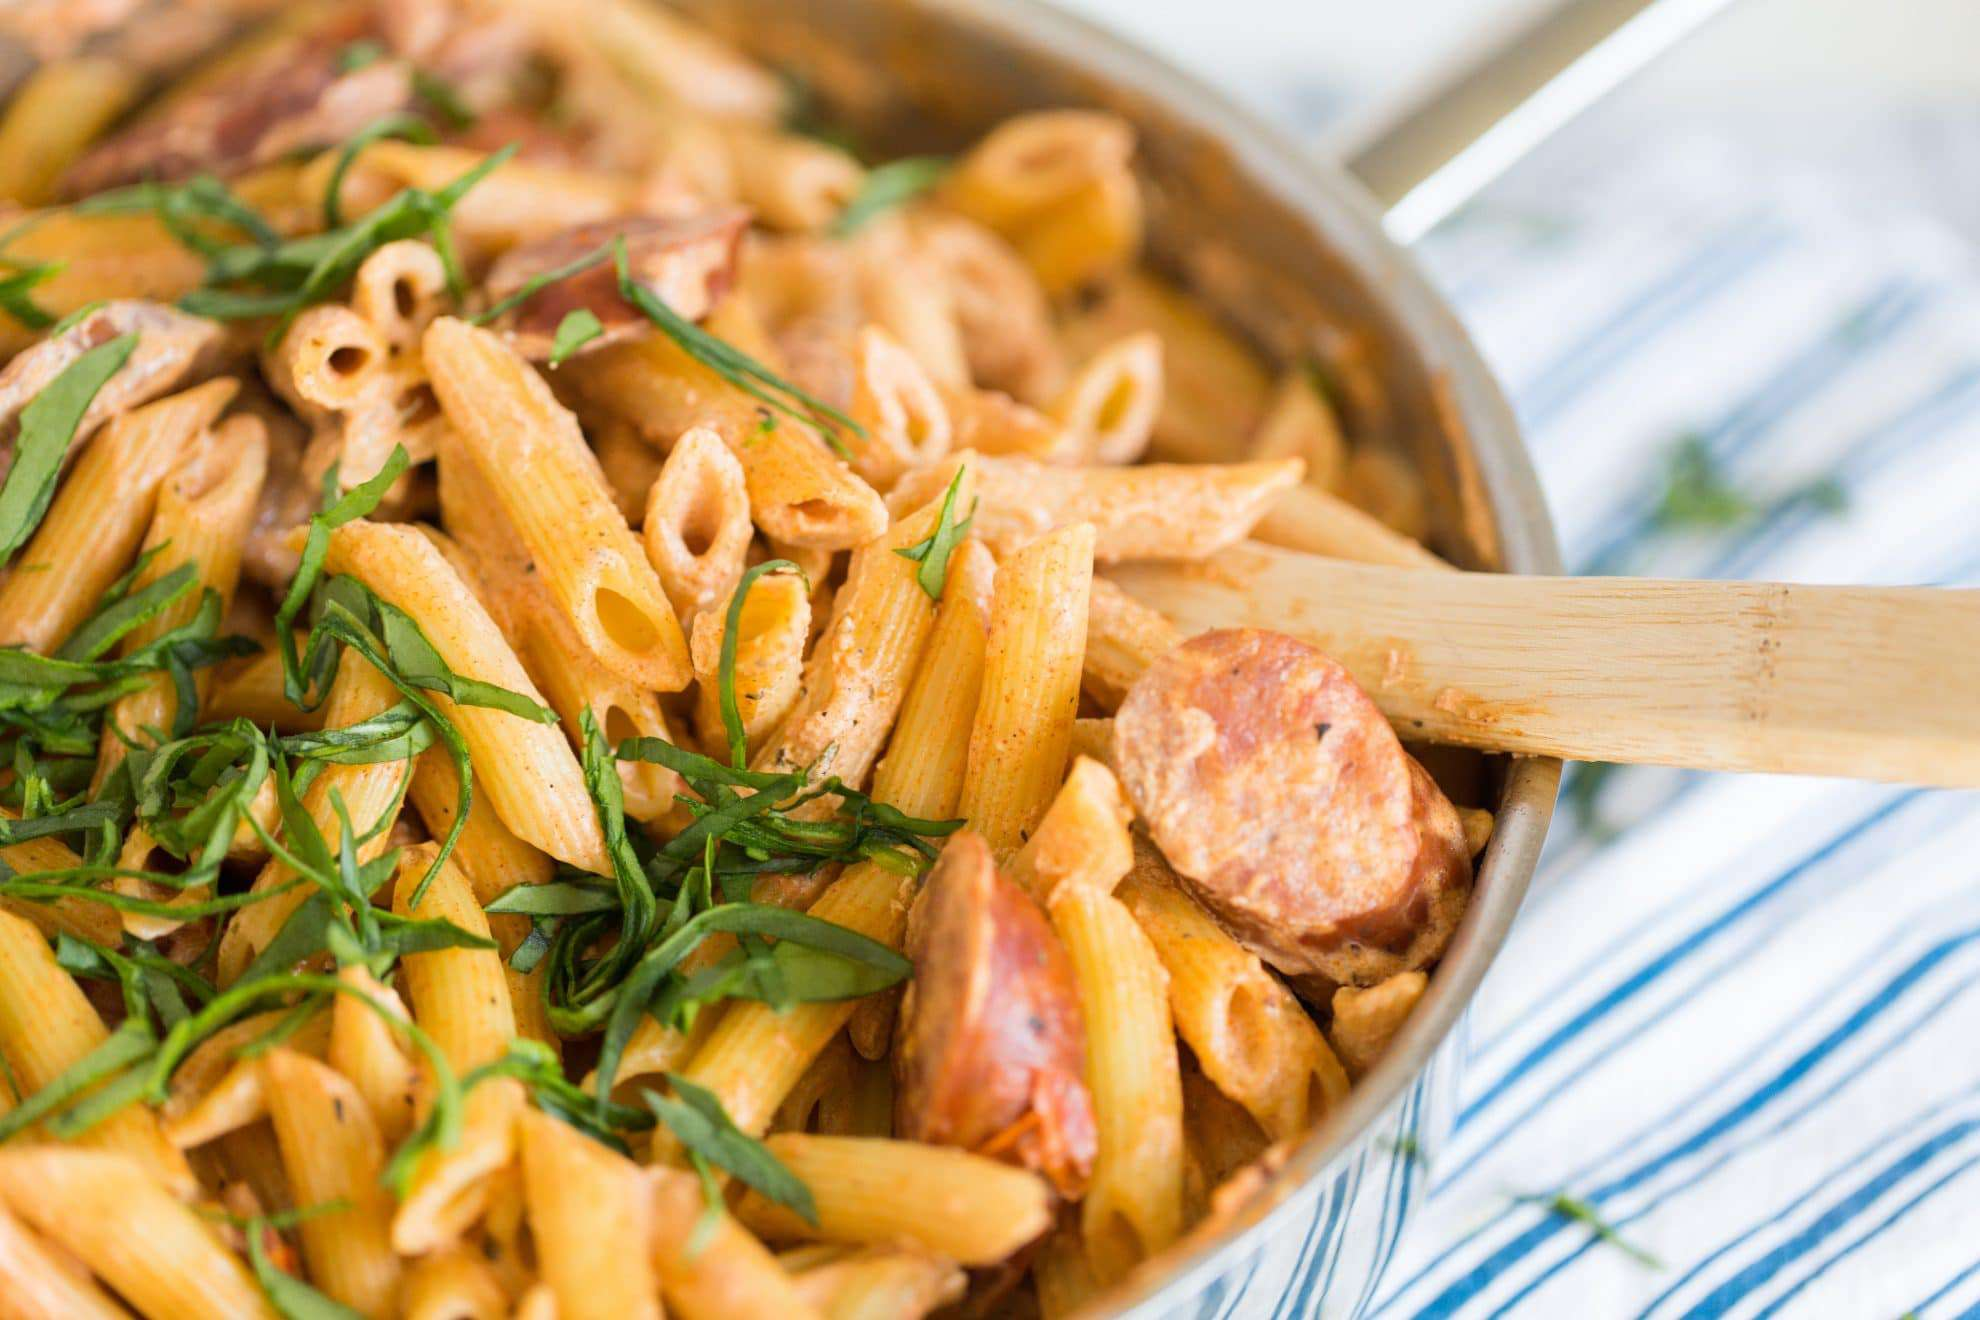 Spicy Cajun Pasta with Sausage